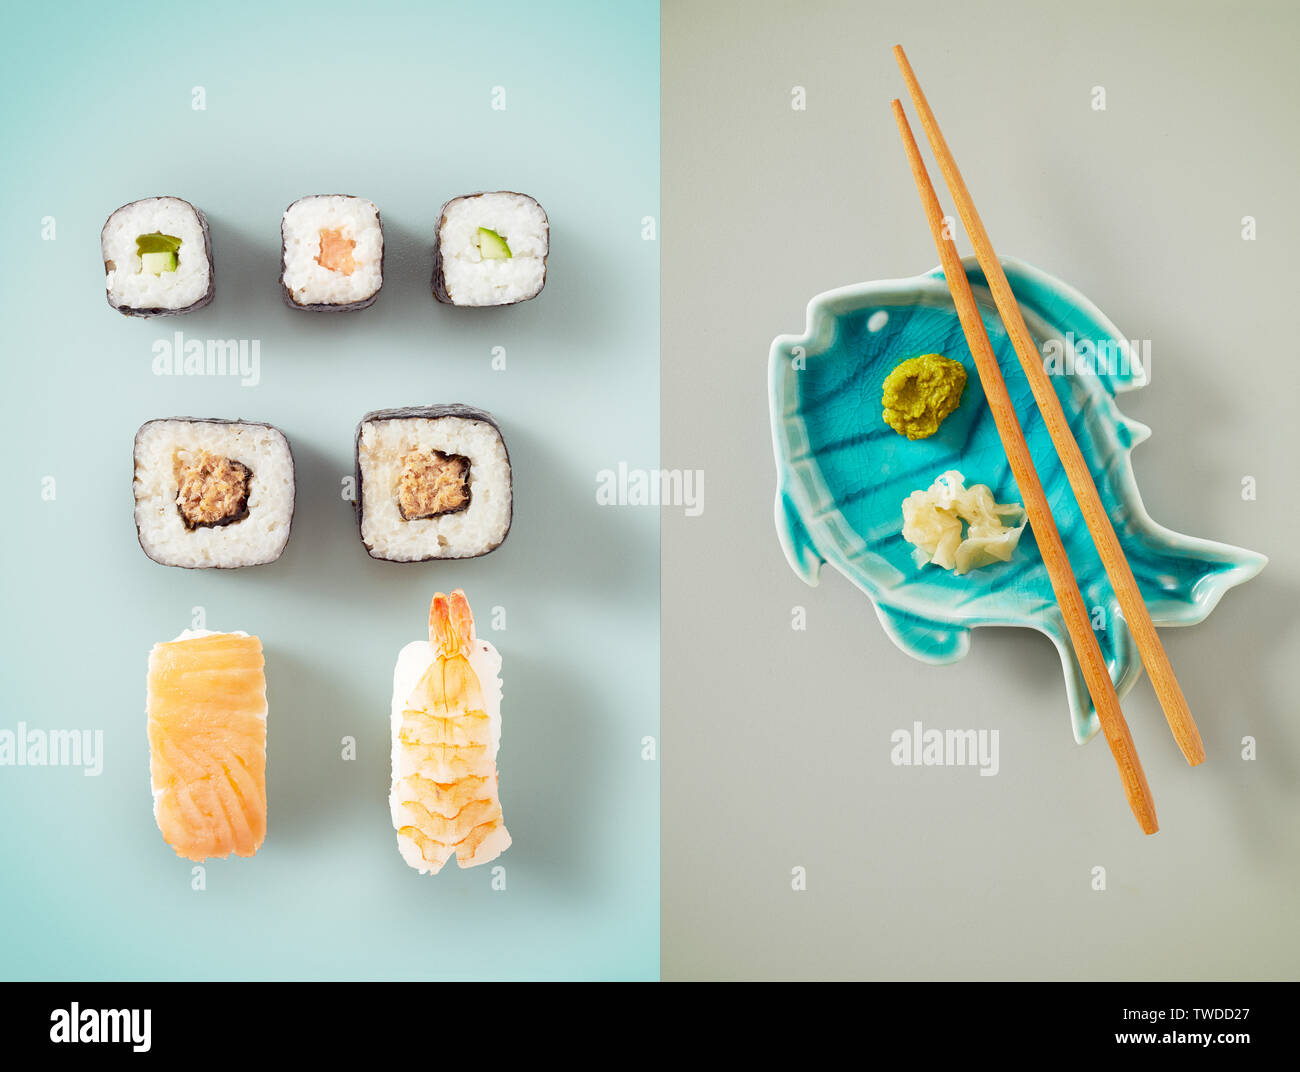 Seaweed wrap filled with avacado next to sushi and blue fish plate holding chopsticks and wasabi sauce - Stock Image